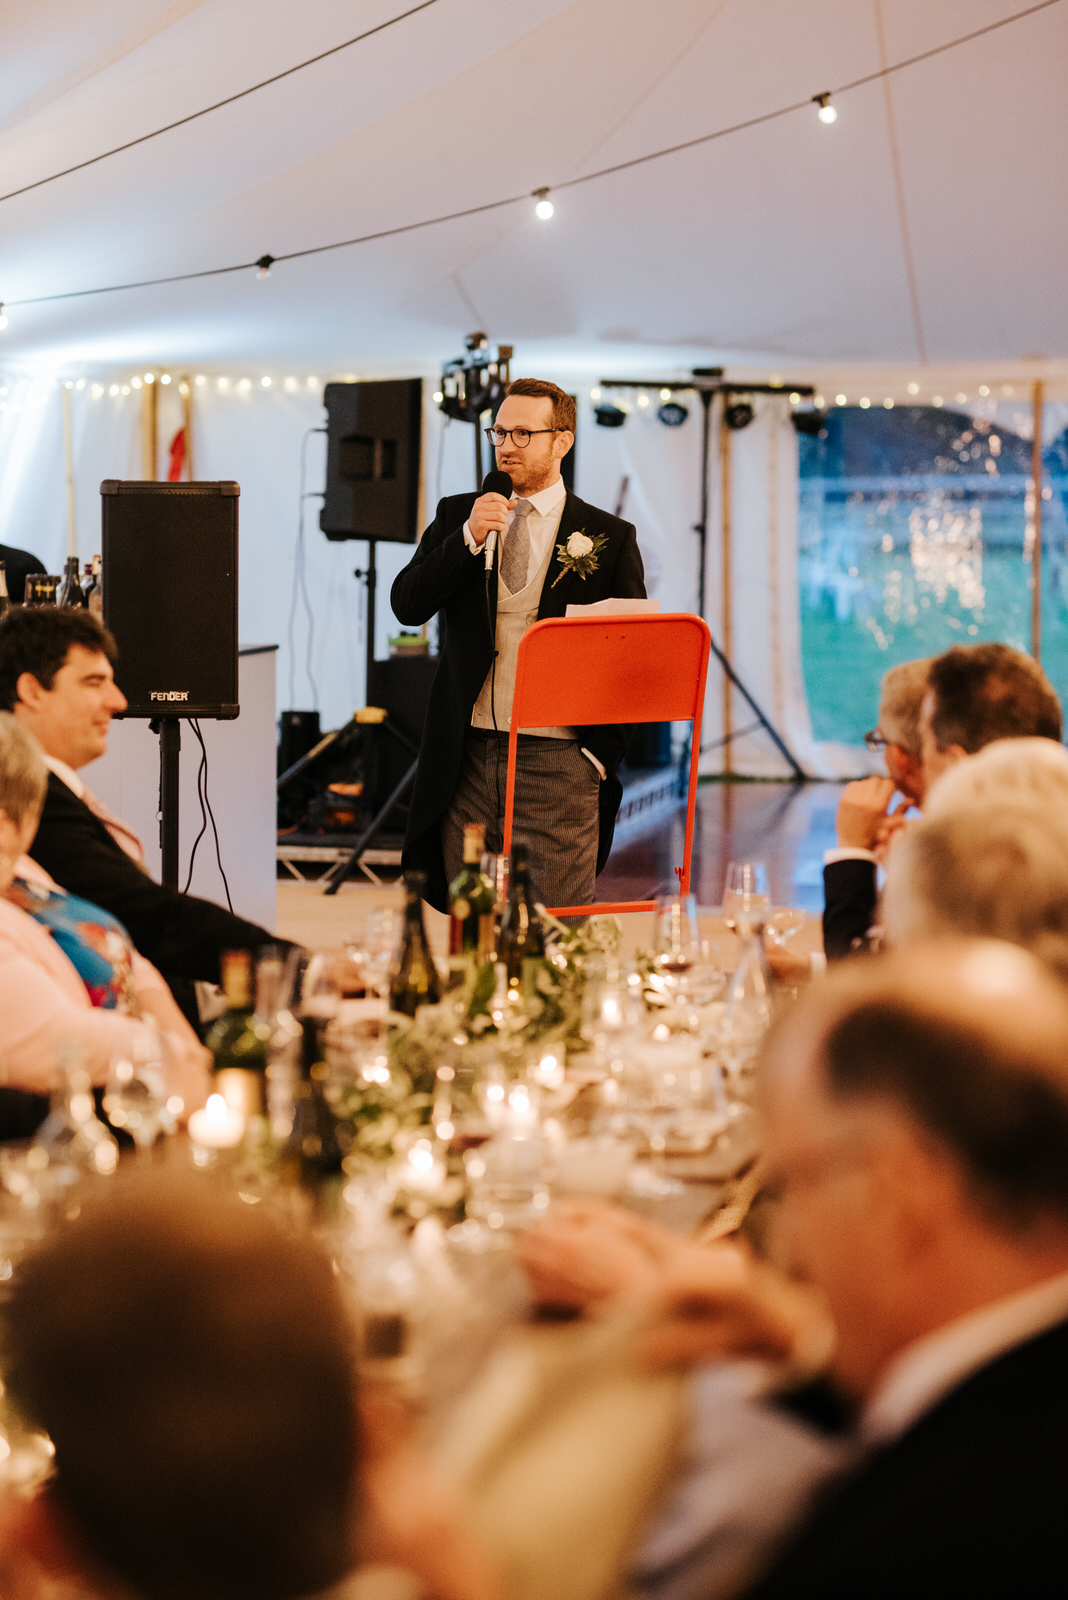 Groom delivers his wedding speech while standing at podium with guests in front